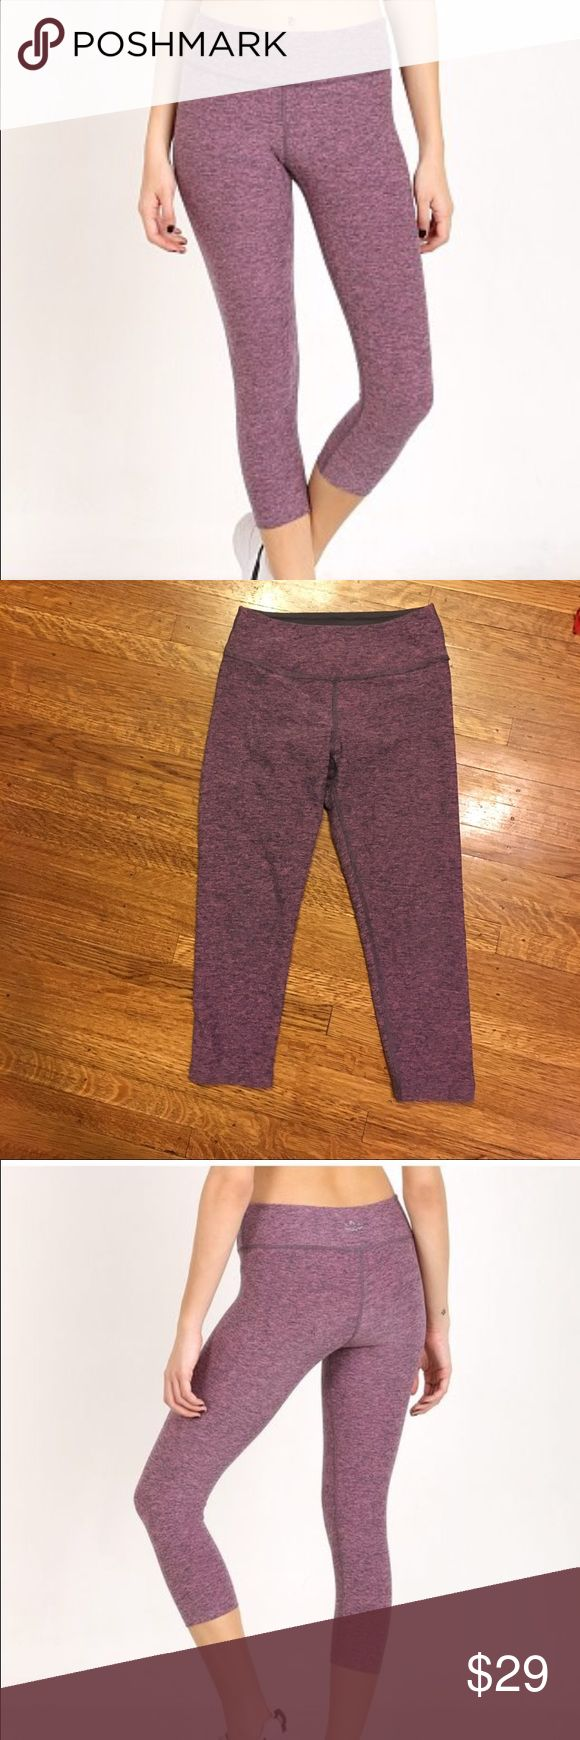 Beyond Yoga Pink Spacedye Capri Legging - XS Steel/Desert Rose color. In perfect condition - no pilling or any flaws. Super soft, well-constructed leggings that give you perfect fit and never lose their shape. No sag, no slip, no digging, perfect waistband! Features performance fabric that's quick drying, moisture wicking, and has 4-way stretch. Fabric: 90% Supplex 10% Lycra. Care: Wash cold. Beyond Yoga Pants Leggings